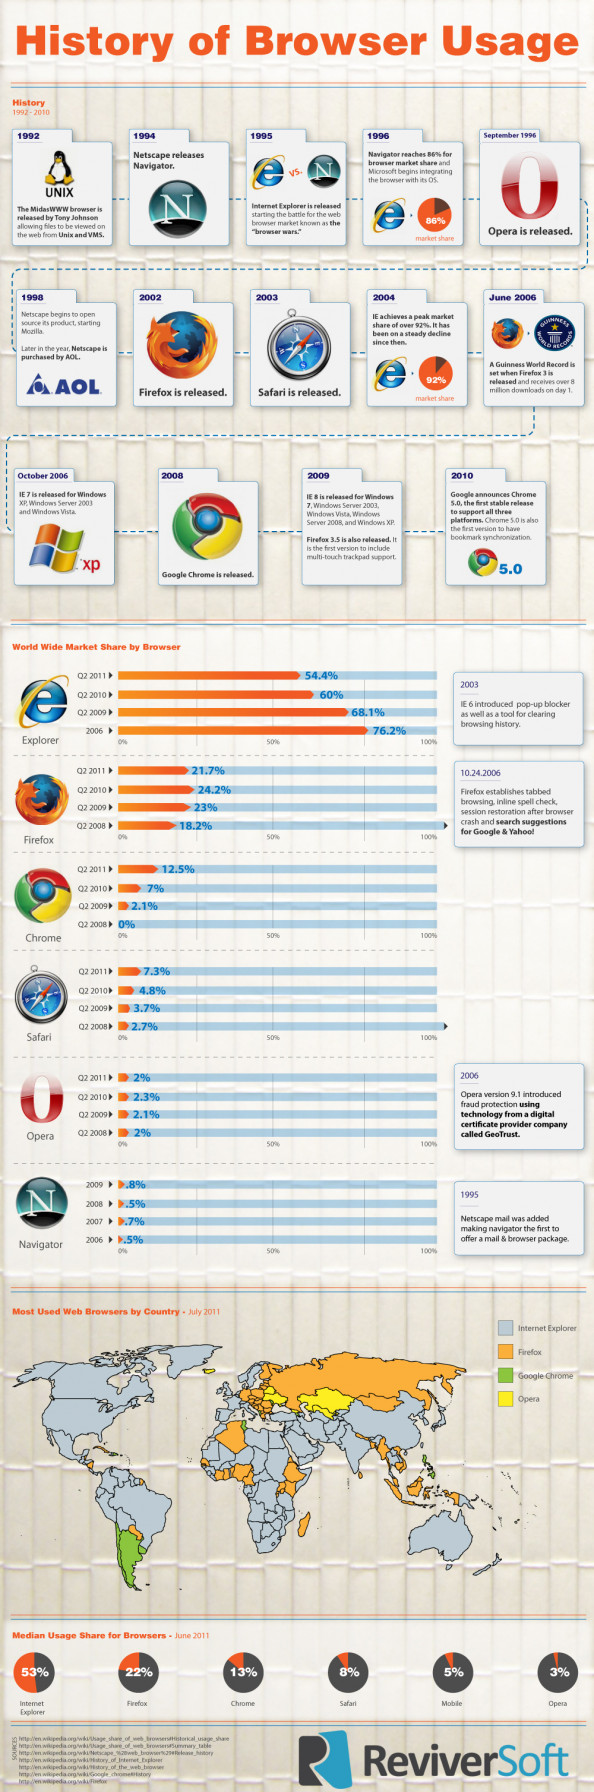 A History of Browser Usage Infographic